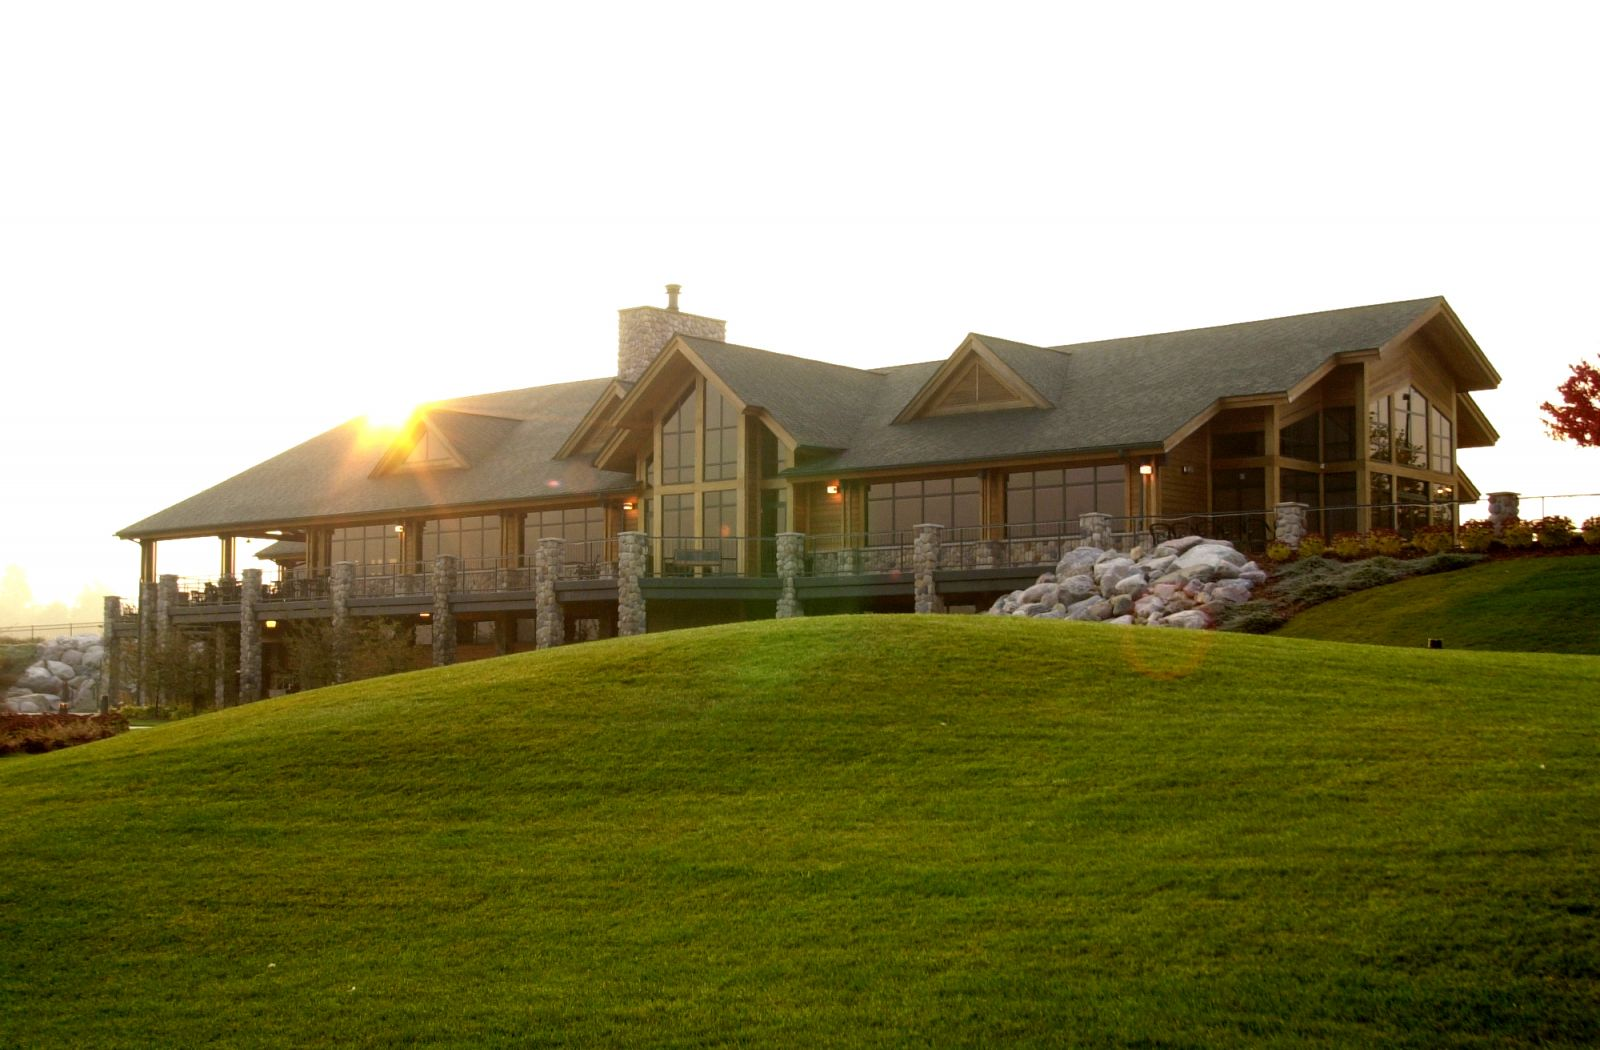 Image Of The Bucks Run Clubhouse At Michigan Golf Courses - Bucks Run Golf Club